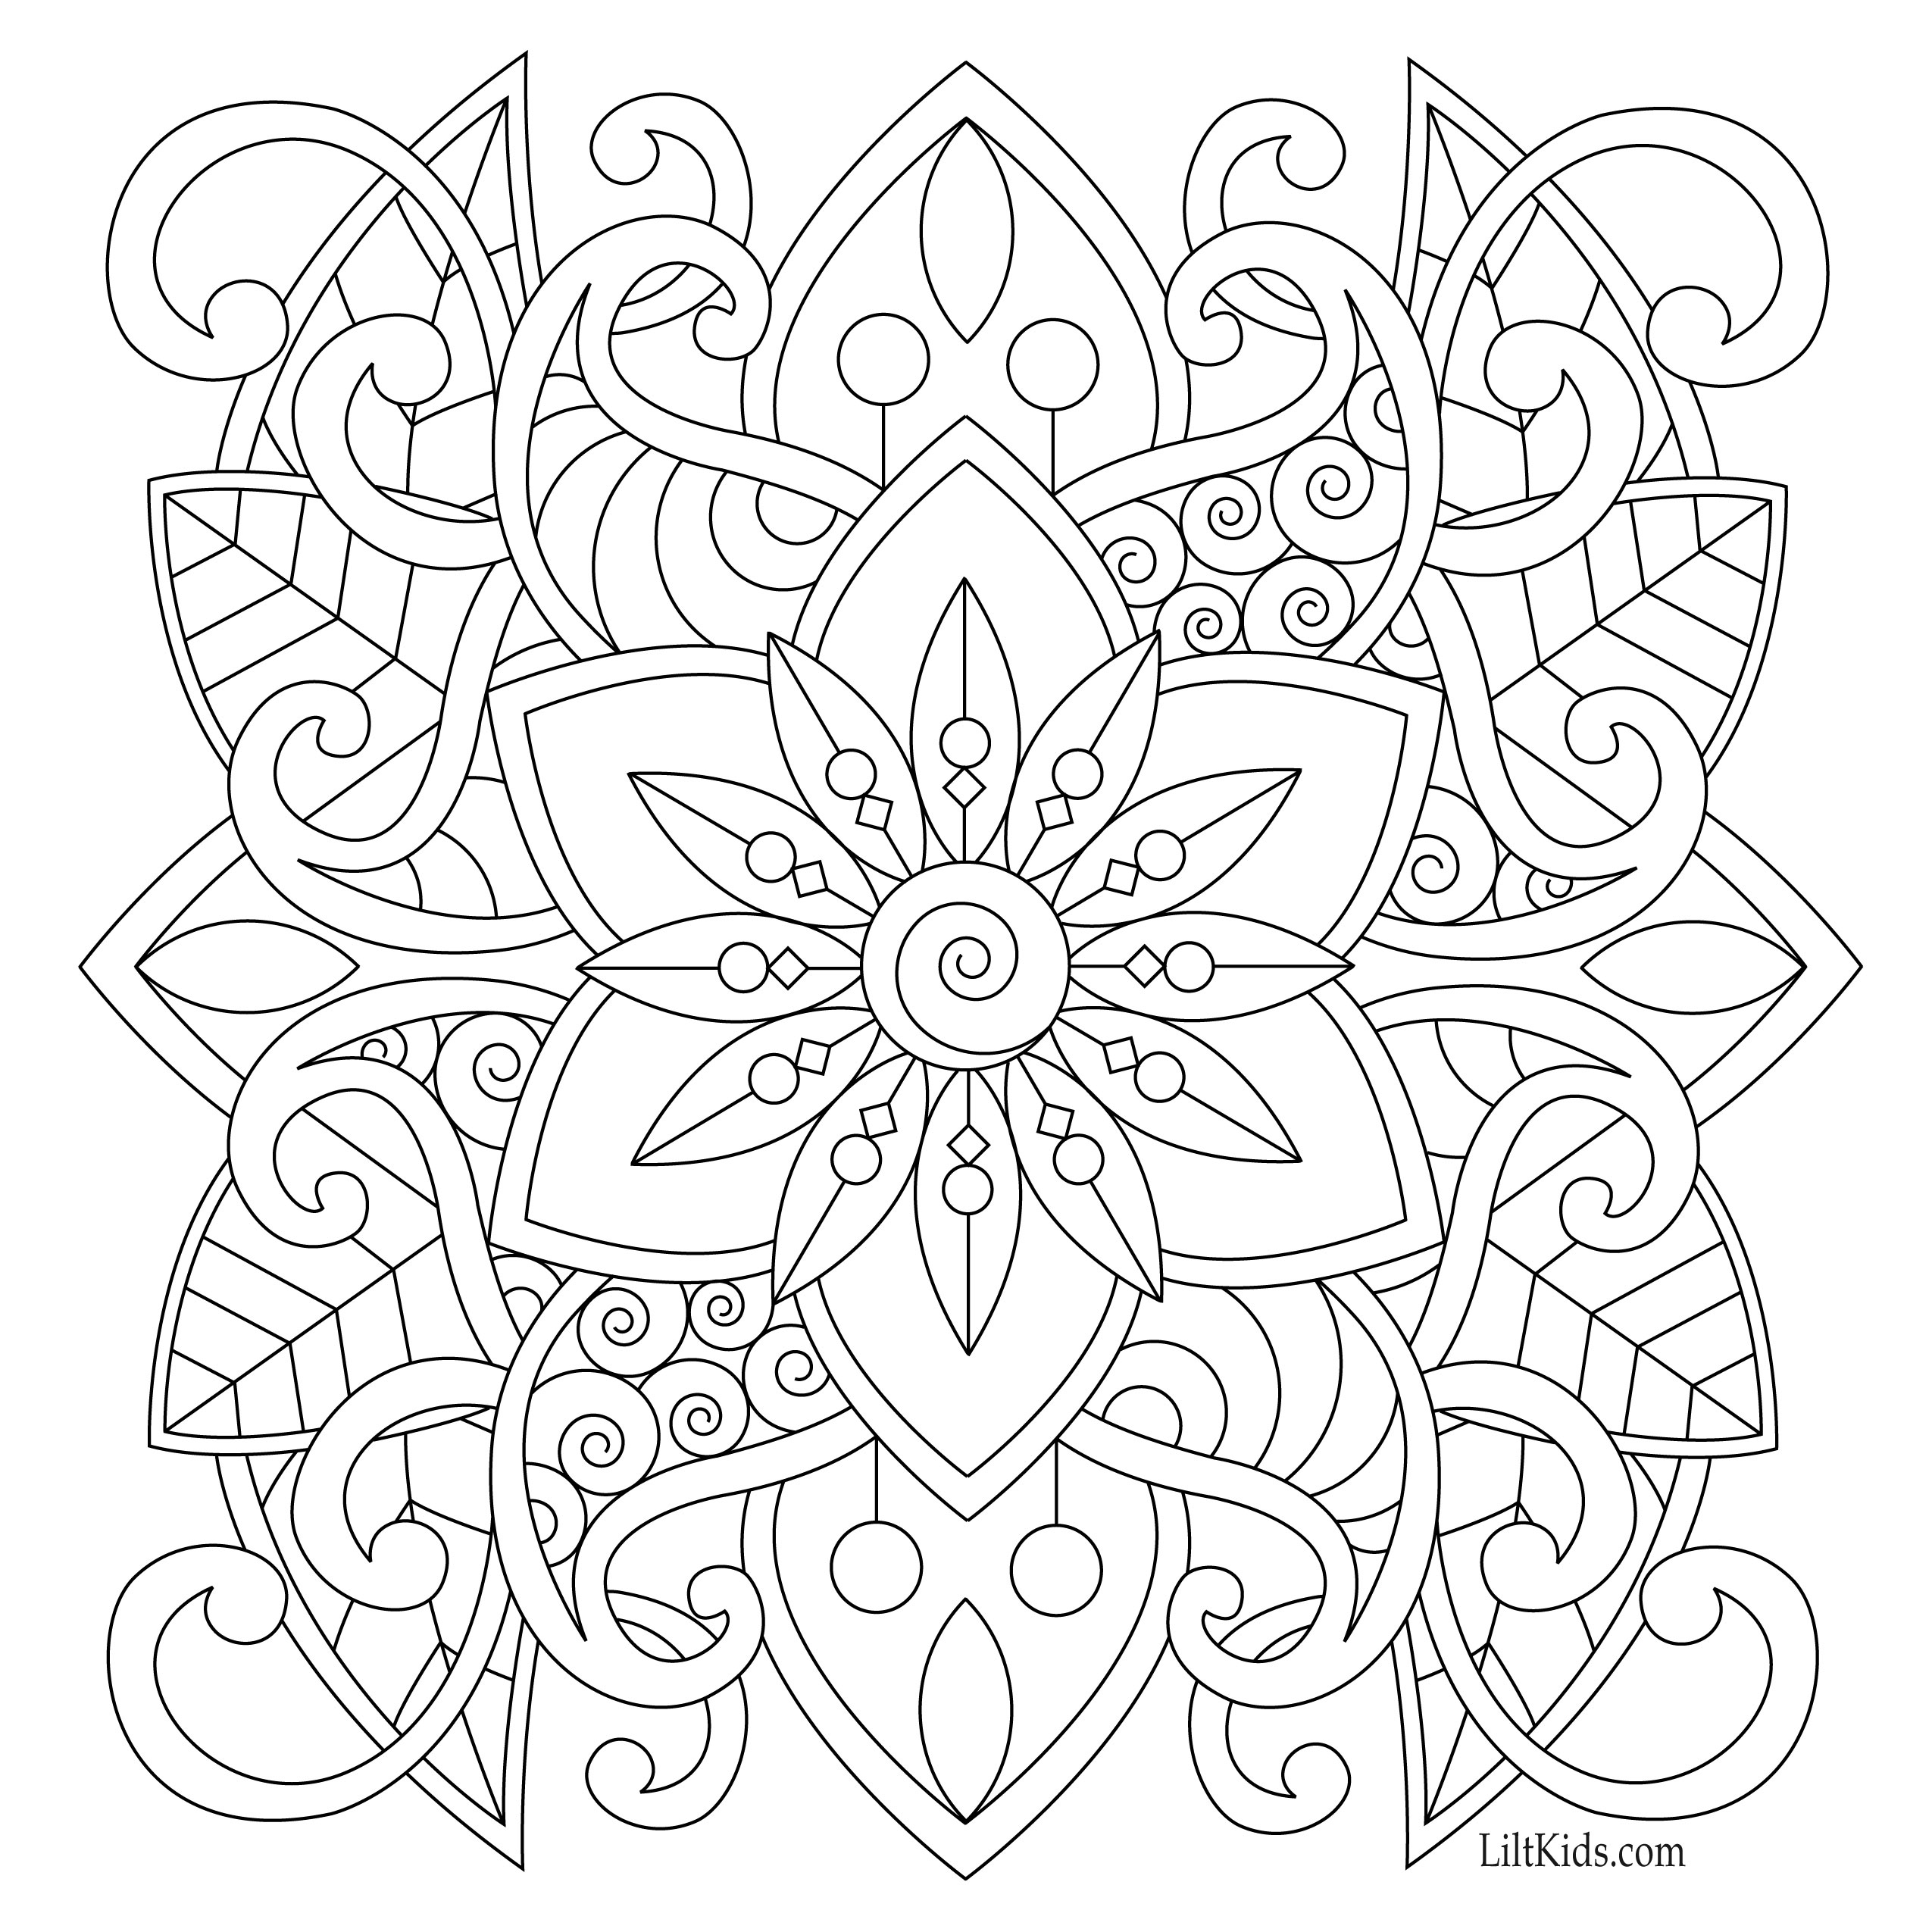 2550x2550 Free Easy Mandala For Beginners Adult Coloring Book Image